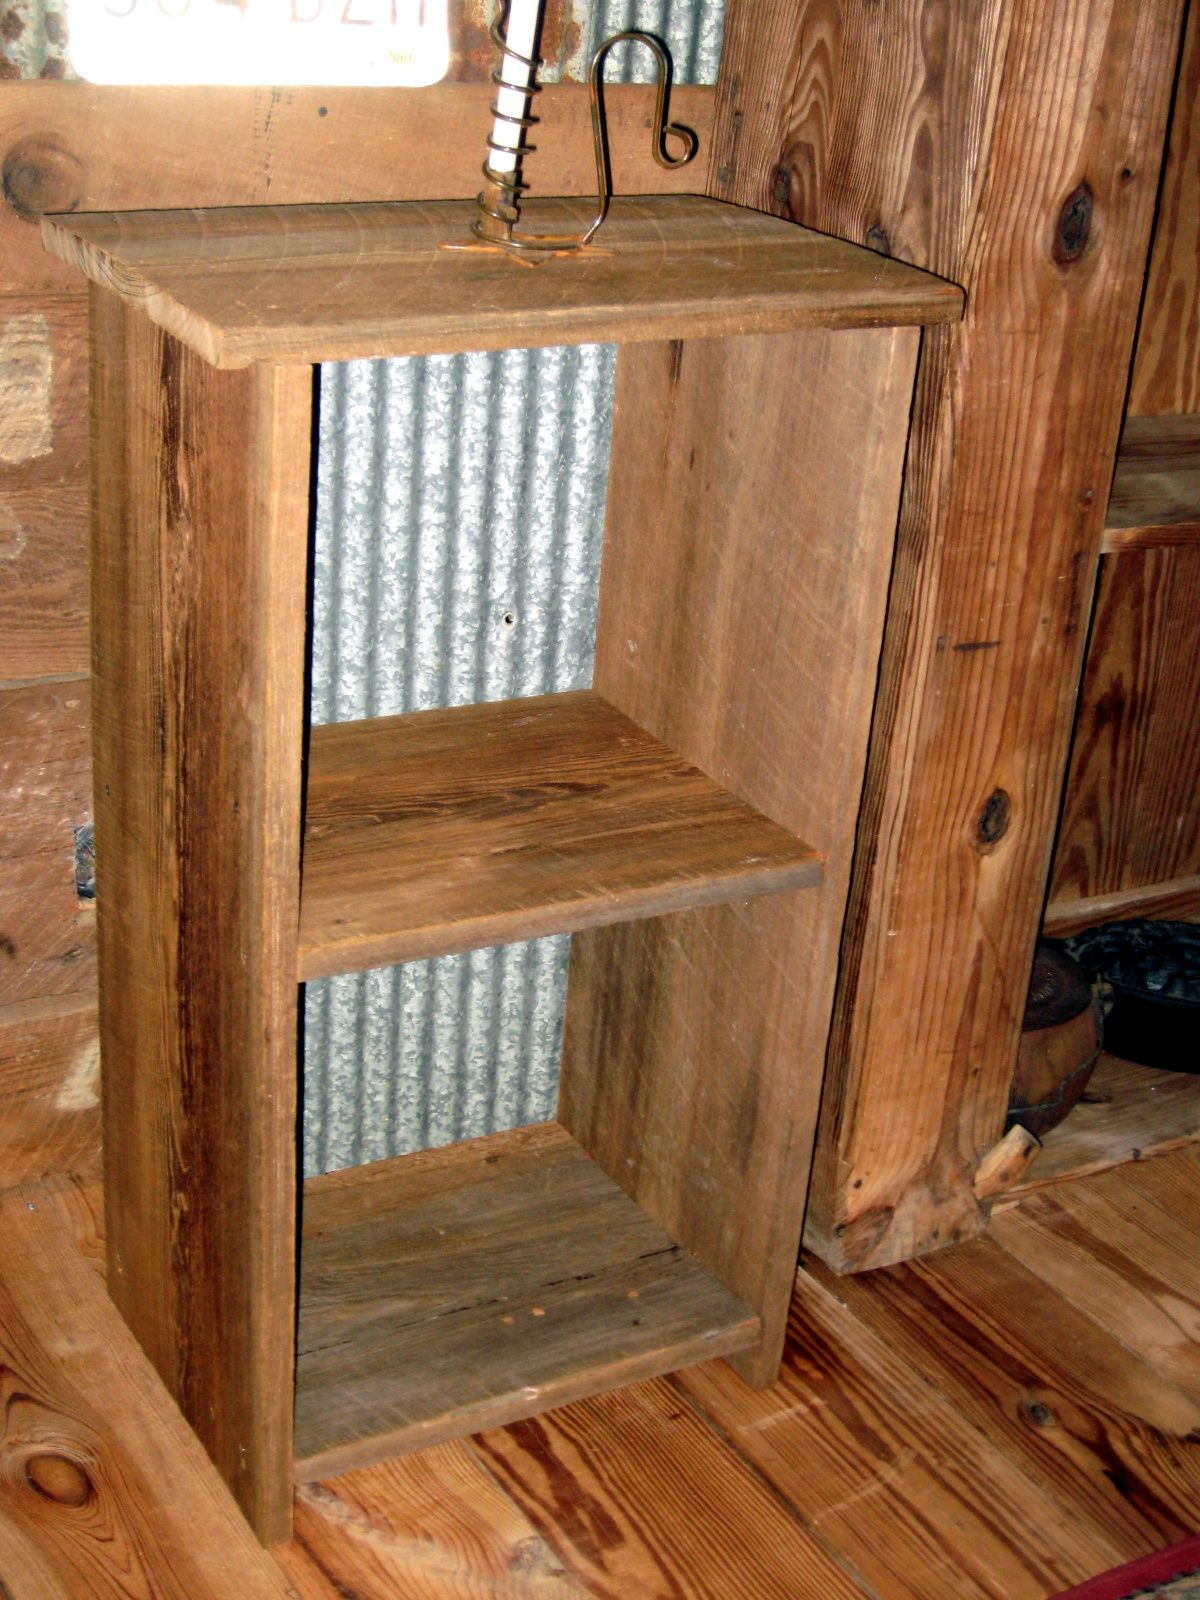 Cabinet Made With Reclaimed Wood And Tin From Old Cotton